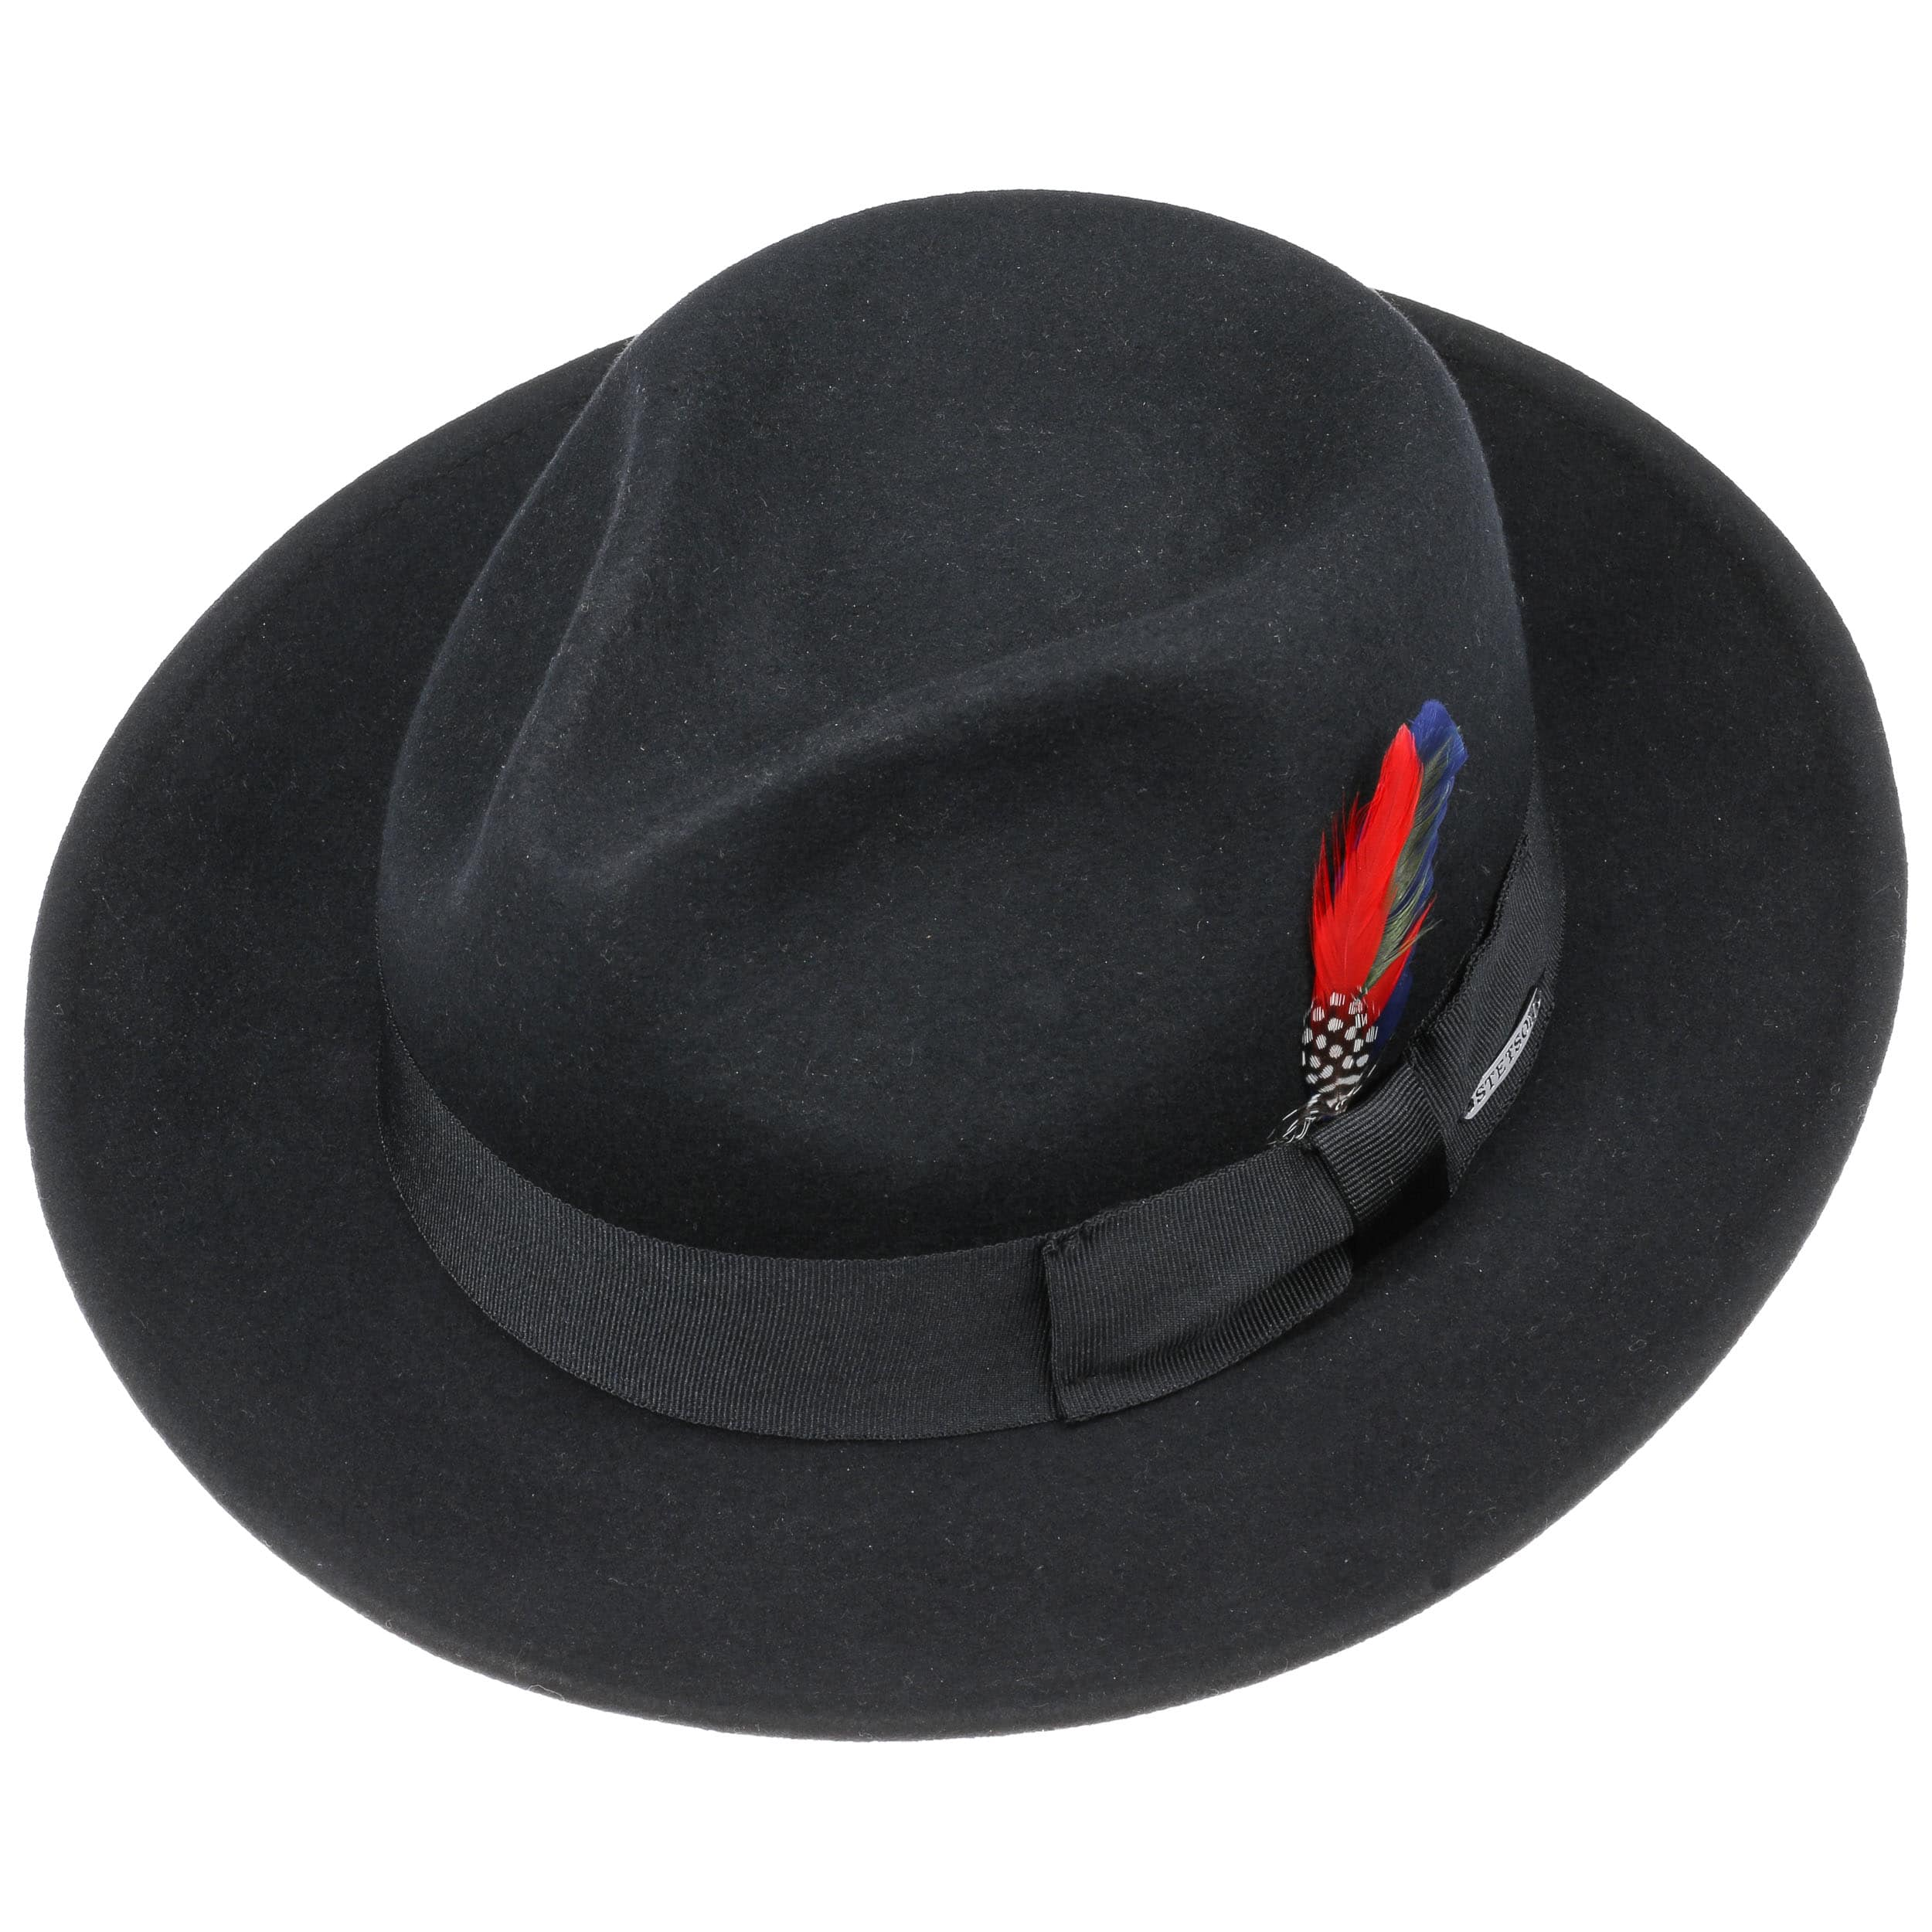 f2fae281d4a3aa Tarveston Fedora Hat with Cashmere by Stetson - black 1 ...